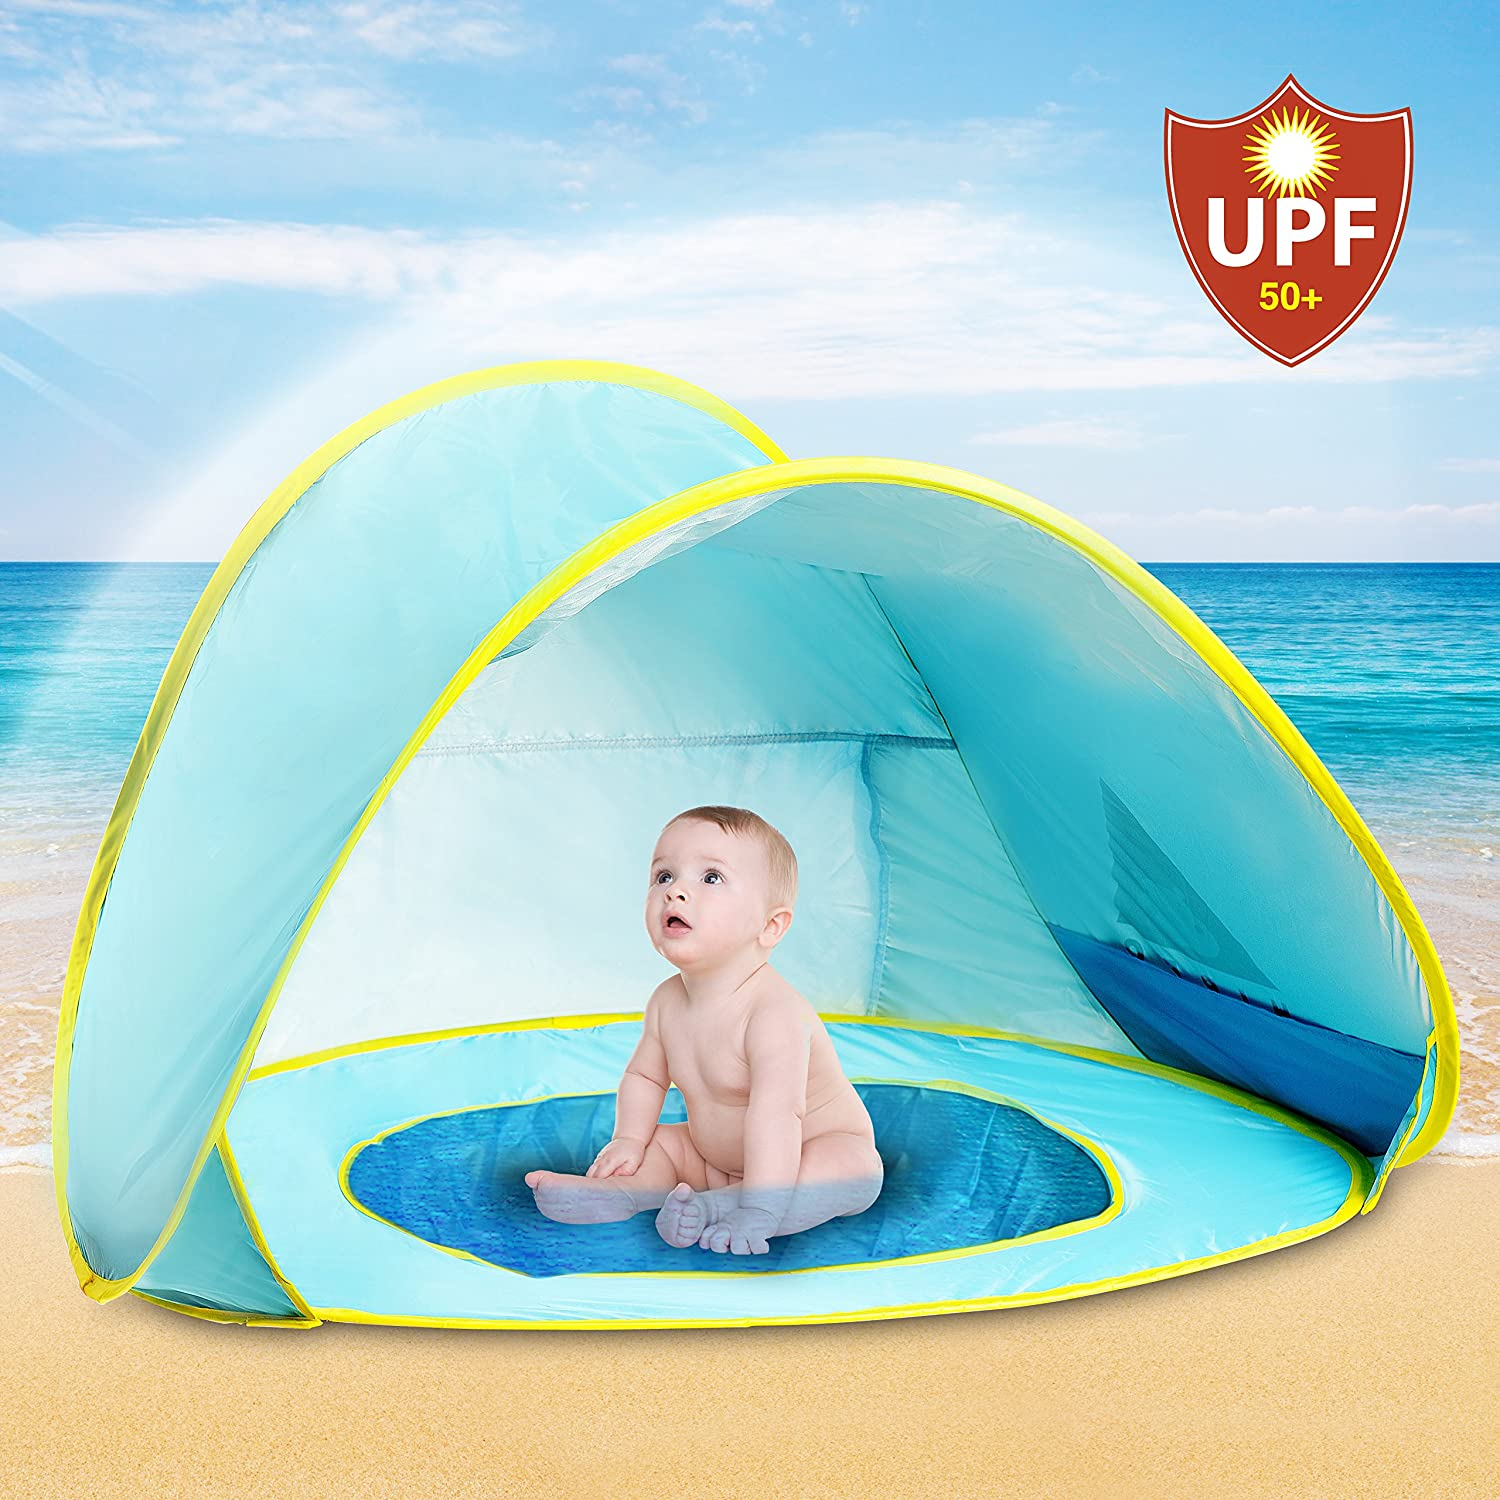 Hippo Creation UV Predection Baby Beach Tent with Pool, Popup Sun Canopy Shelter, Kiddie Beach Umbrella, Excellent for Infant and Kid up to 3 Years Old